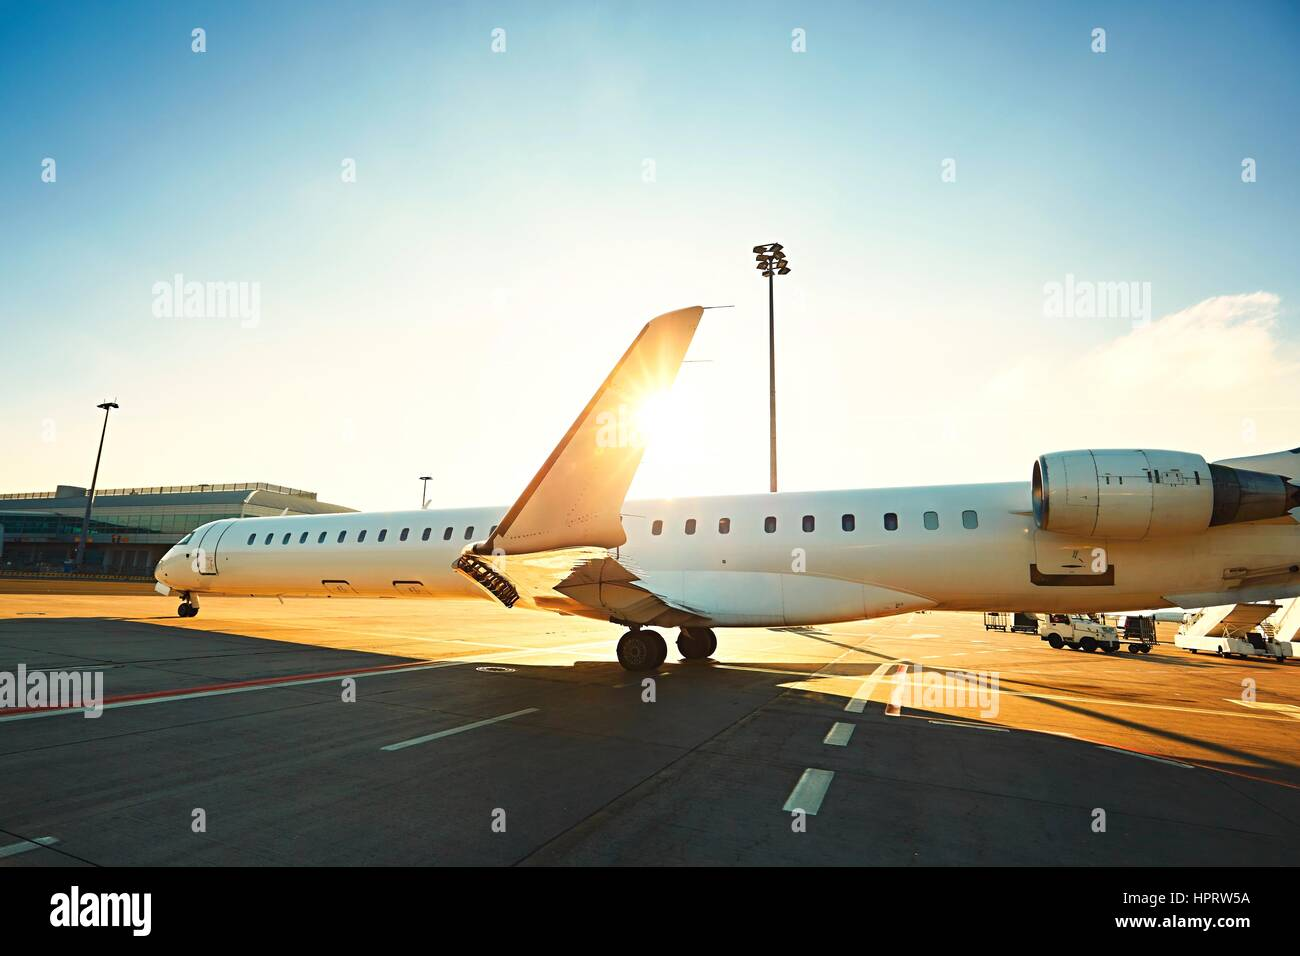 Daily life at the international airport. The airplane is taxiing to the runway during sunset. - Stock Image